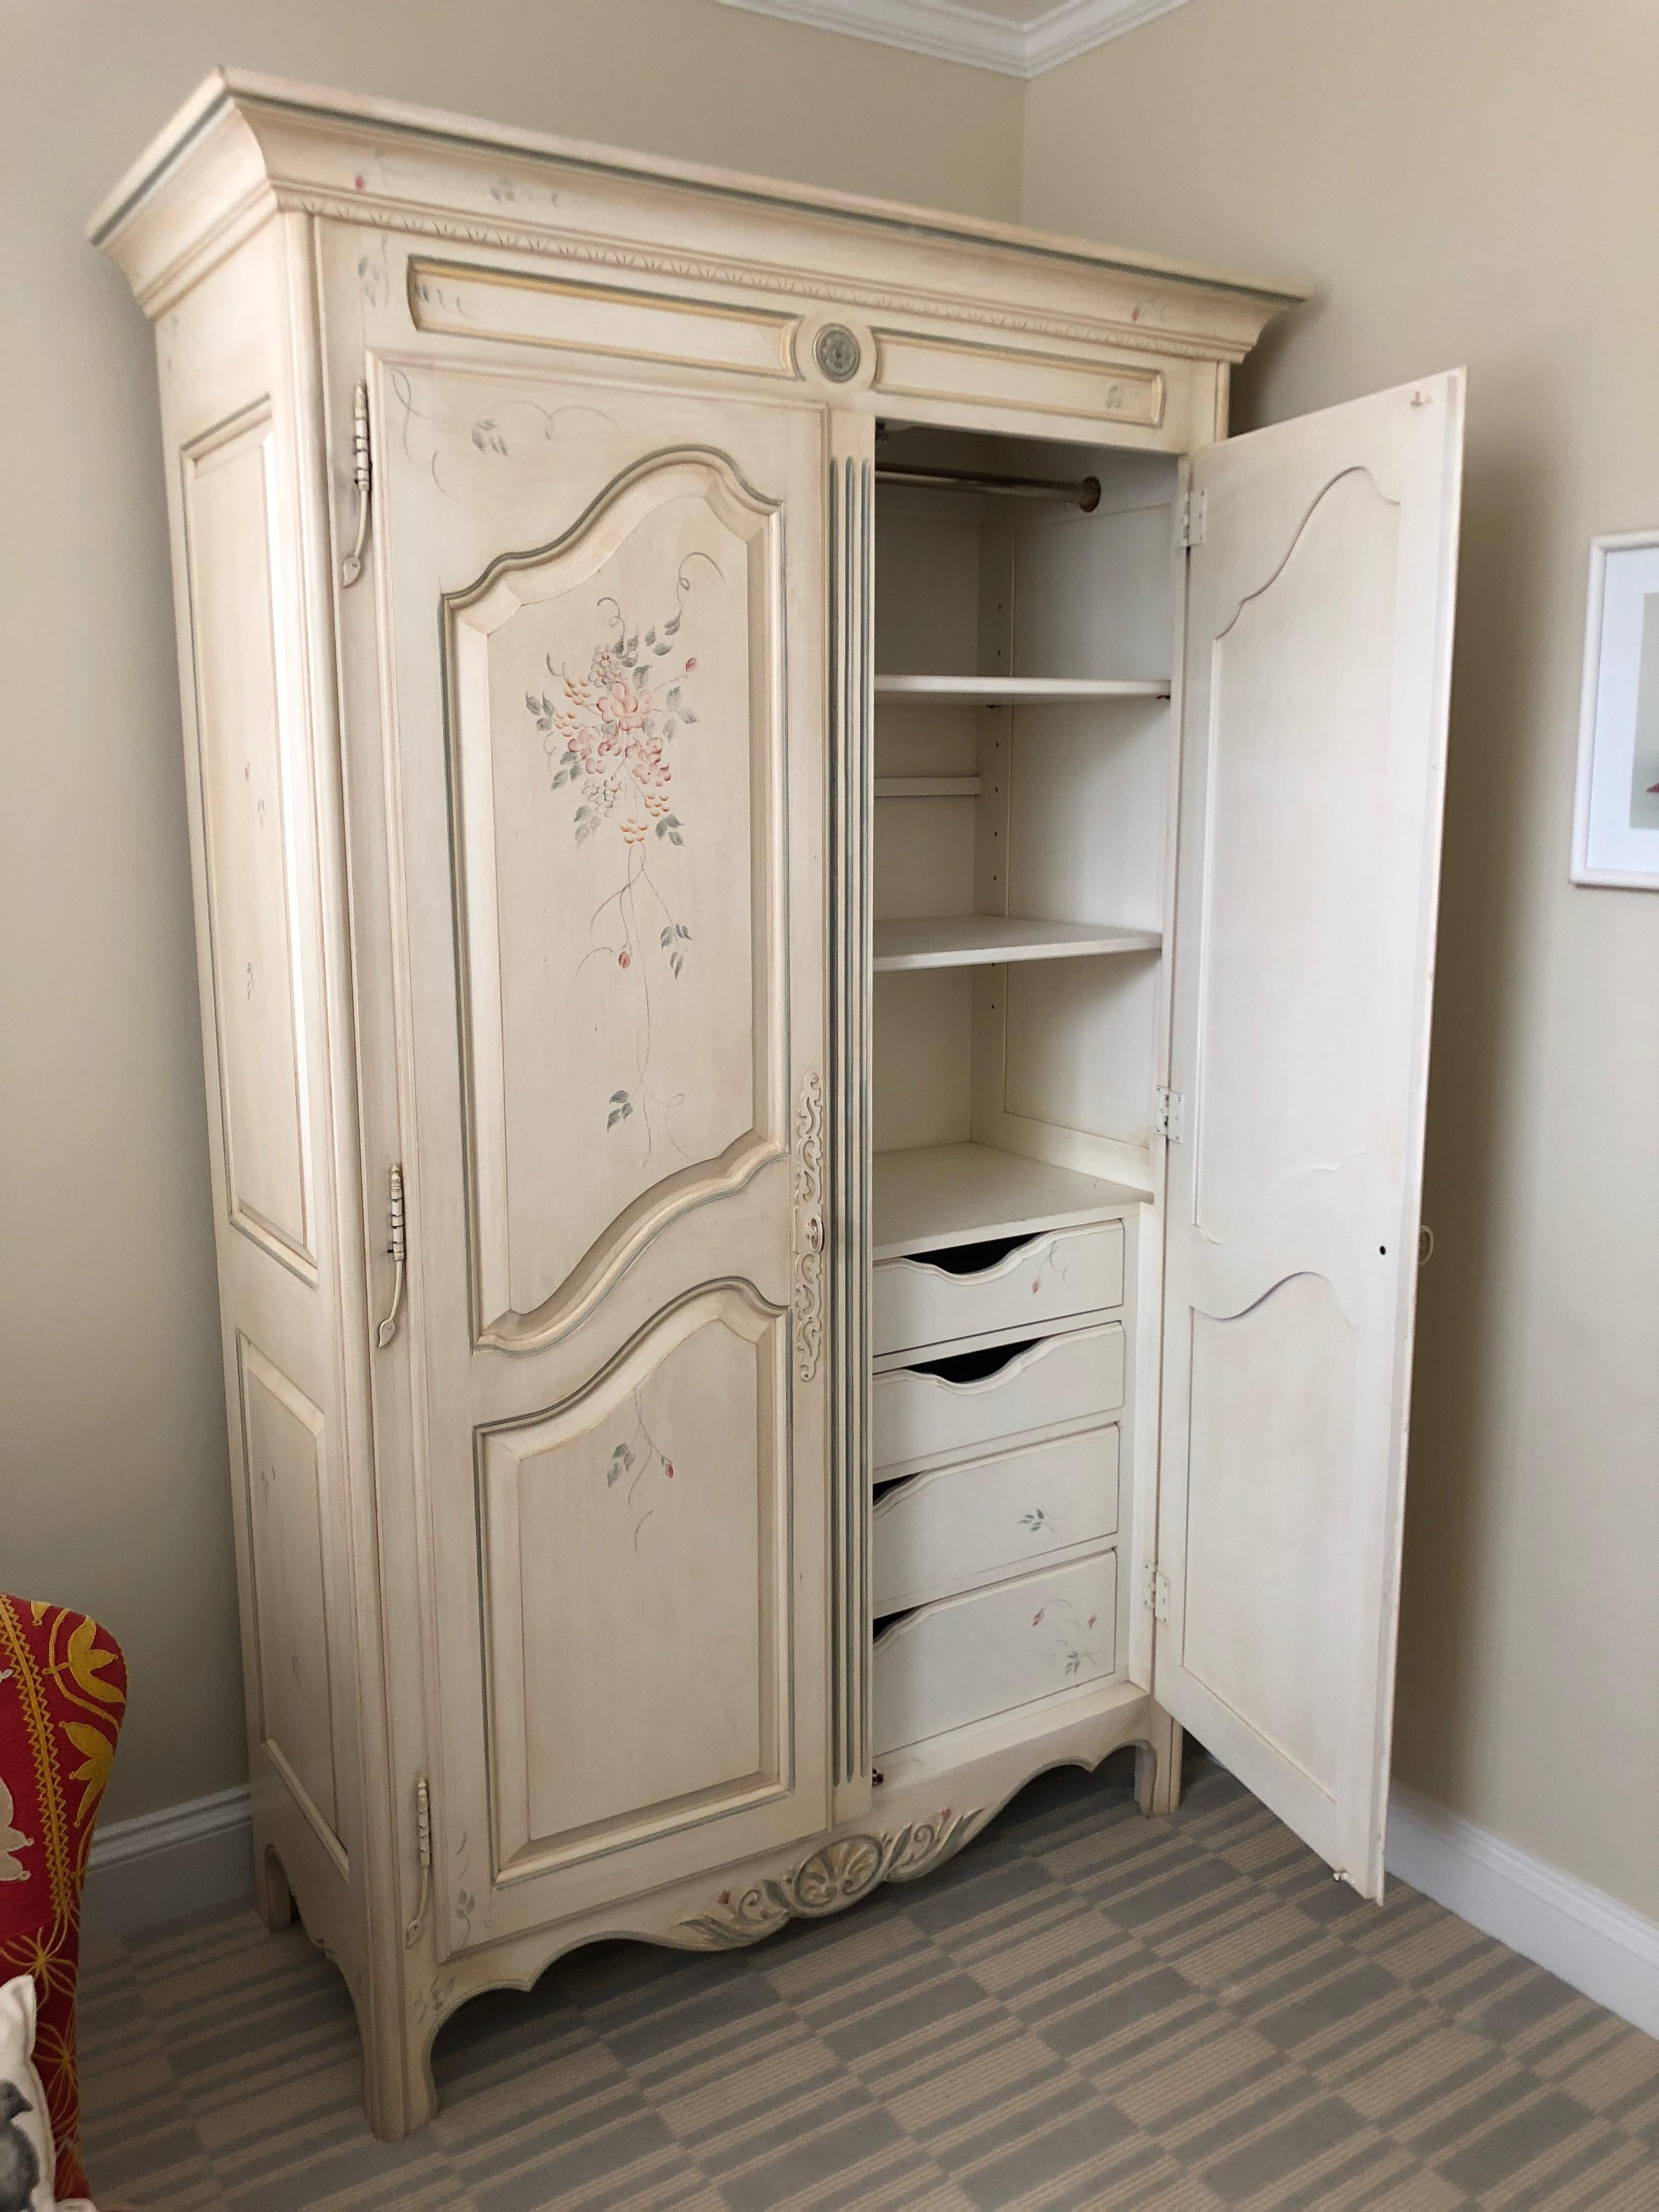 Wardrobe Furniture French Country Painted Wardrobe Armoire By Ethan Allen